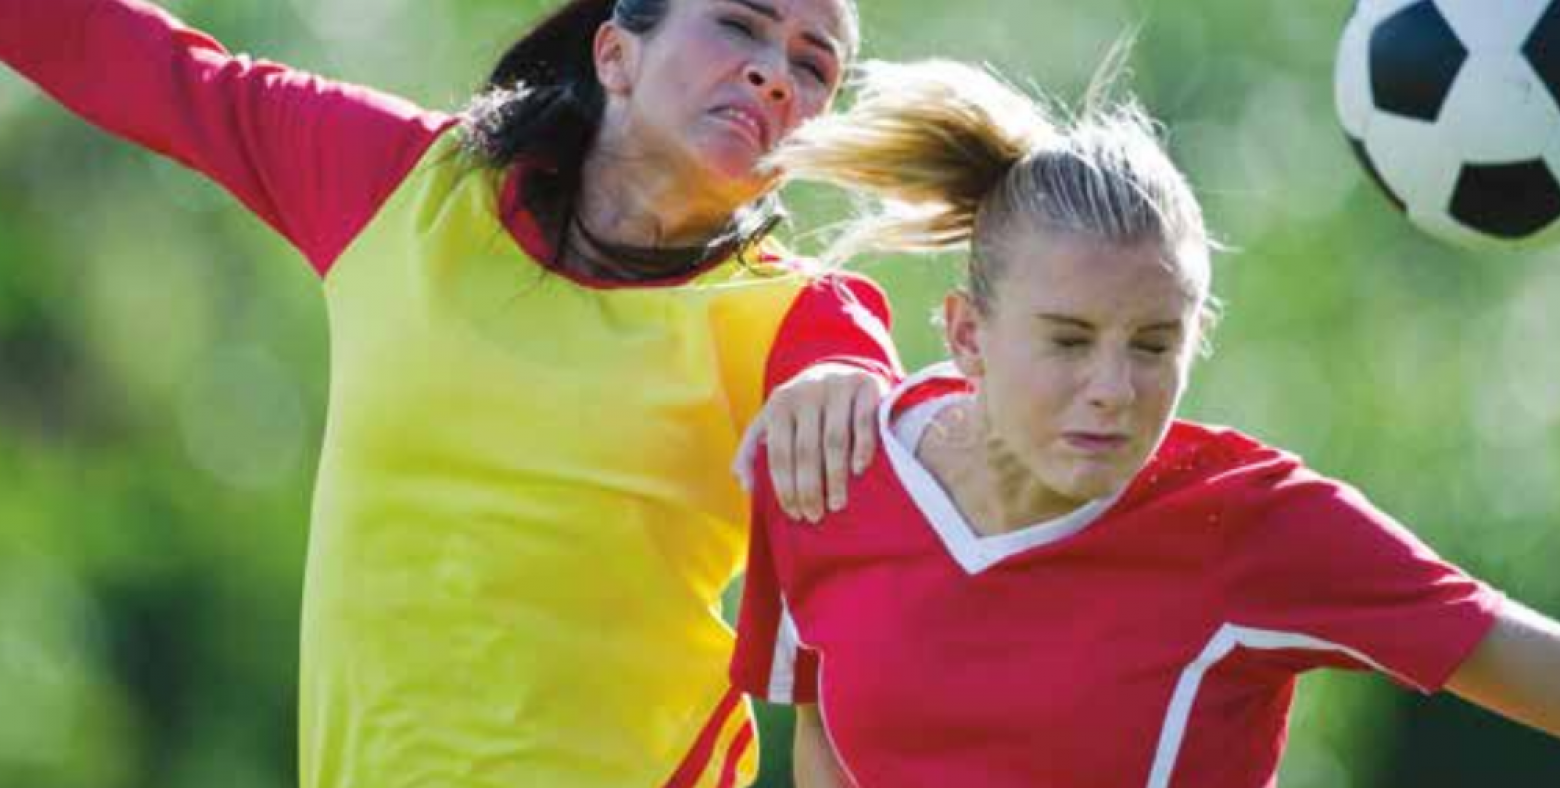 Two women going for a header in a soccer game